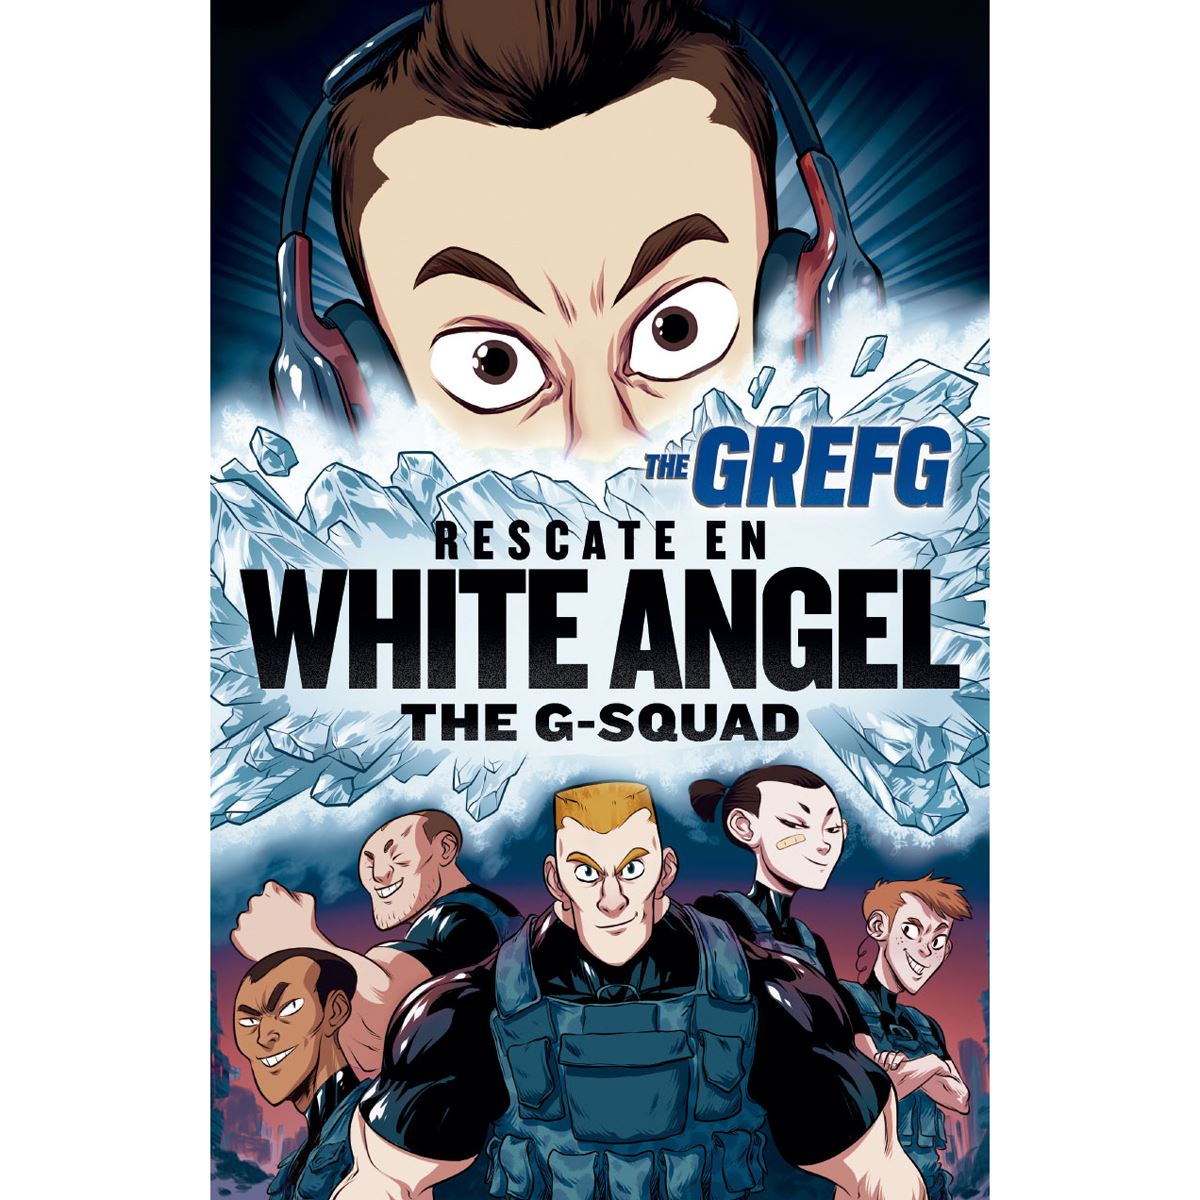 Rescate en white angel. The G squad